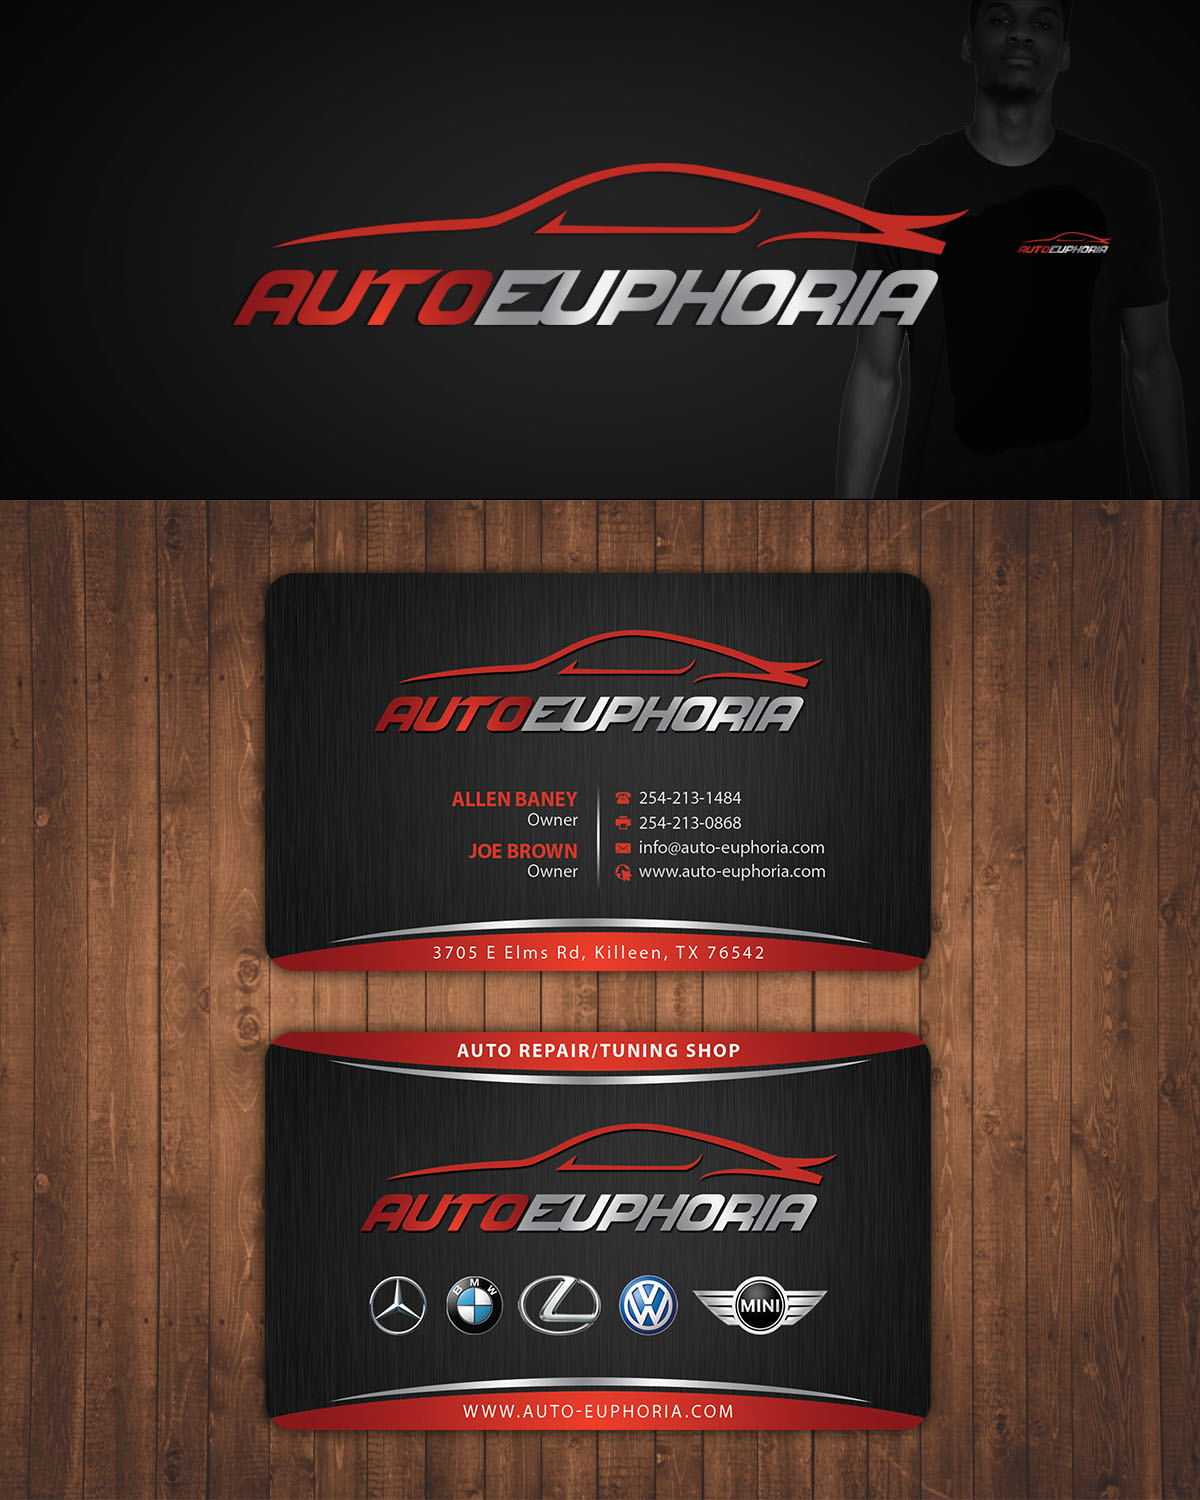 Modern upmarket automotive business card design for autoeuphoria business card design by stylez designz for this project design 11141031 reheart Images